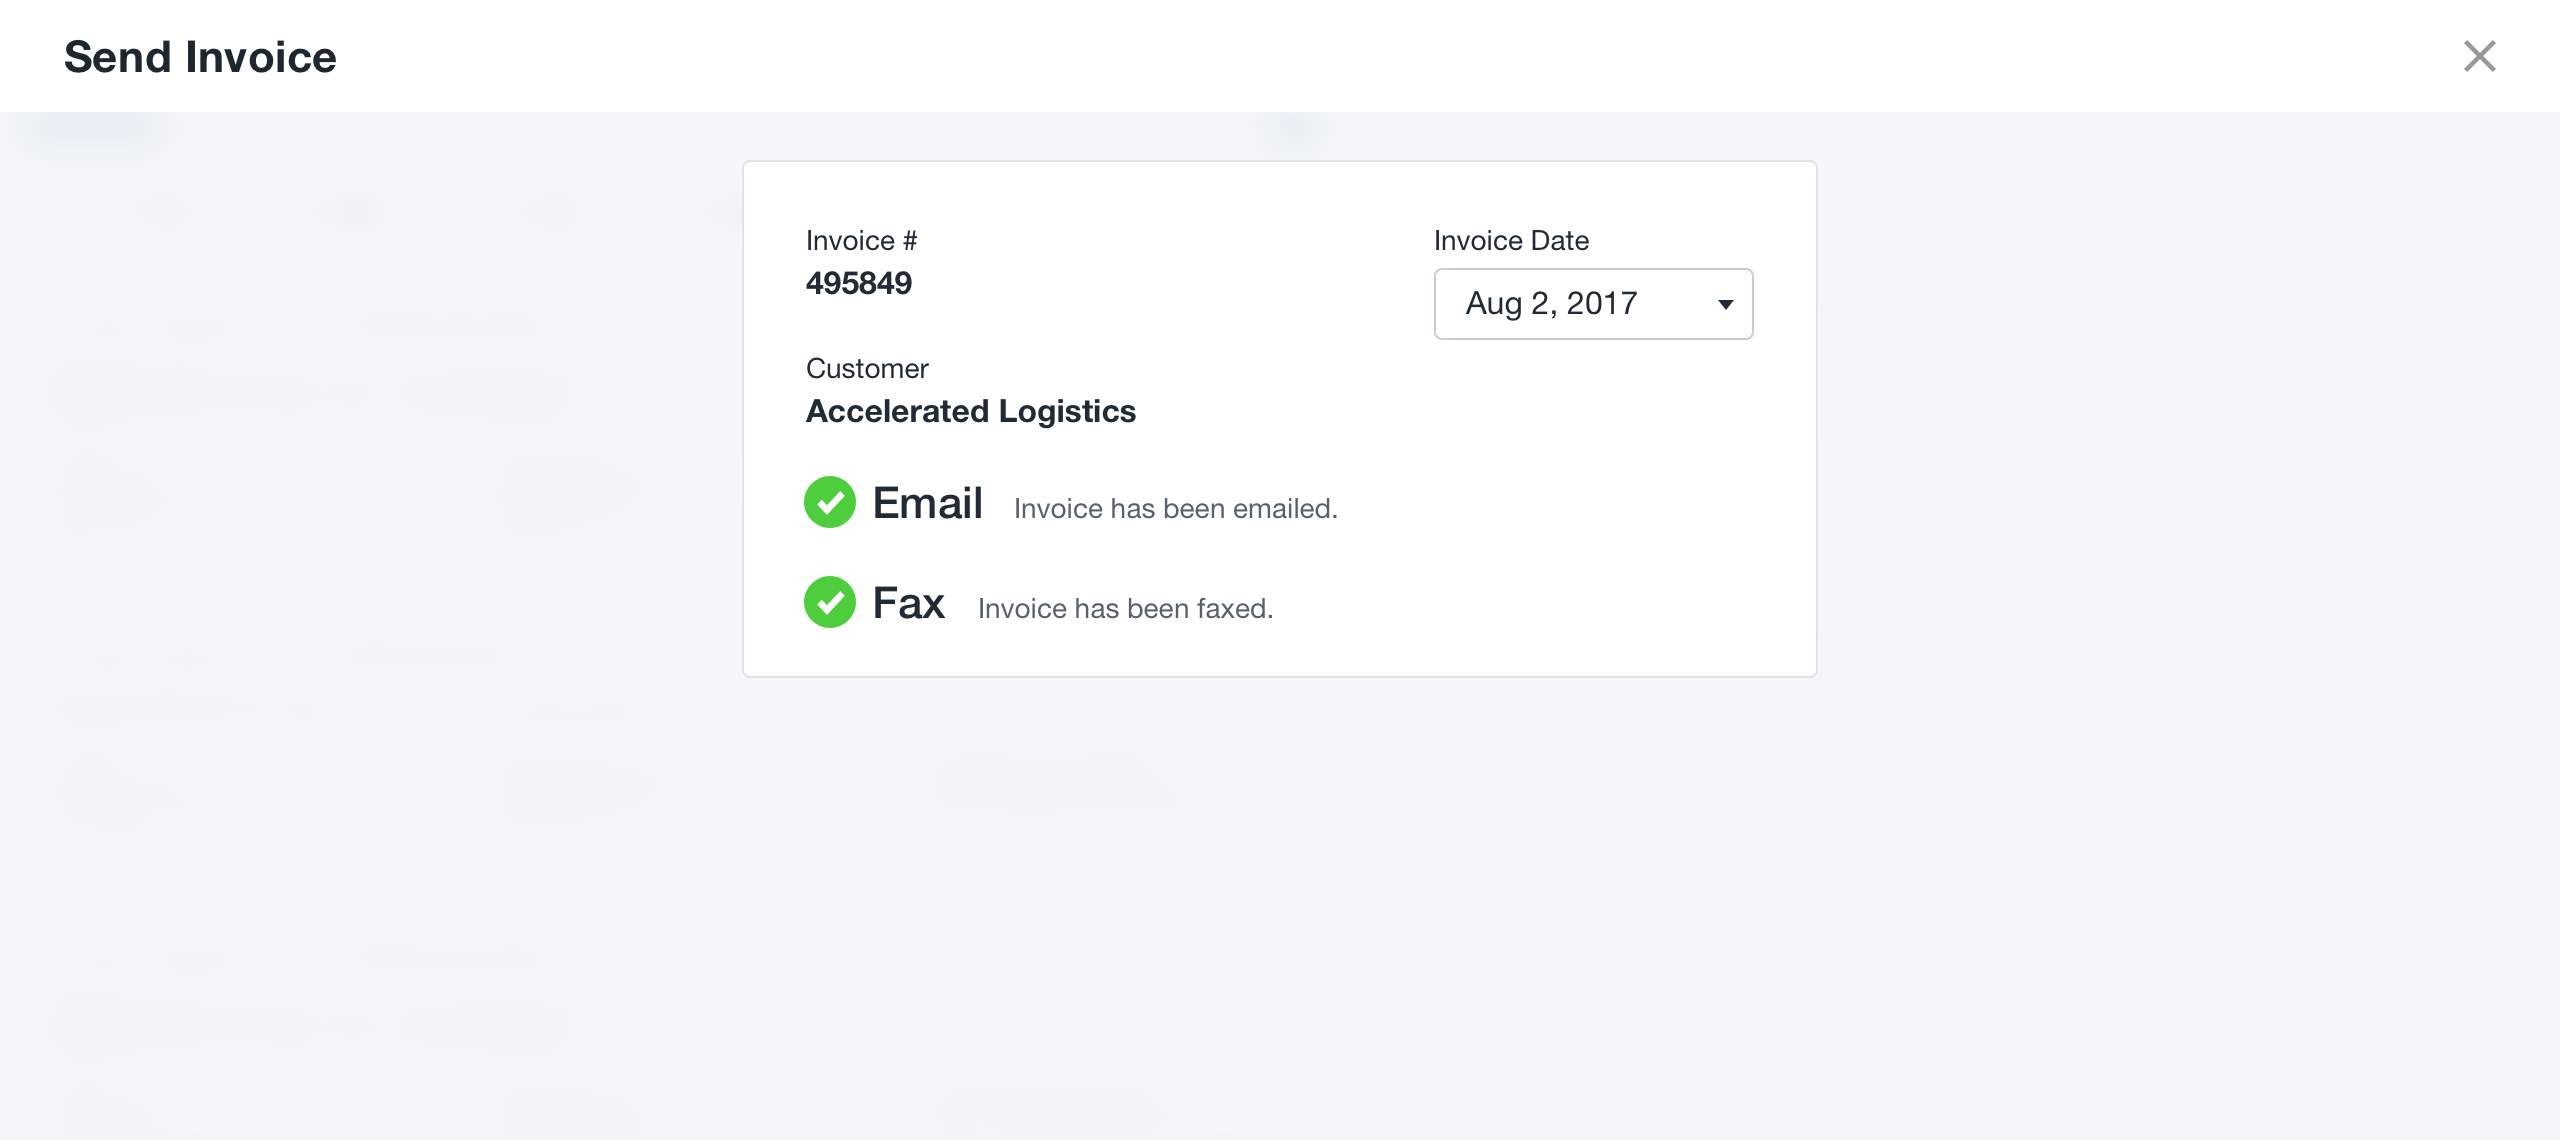 Send Invoice From The Dashboard To EmailFax Super Dispatch Help - Email invoice to customer